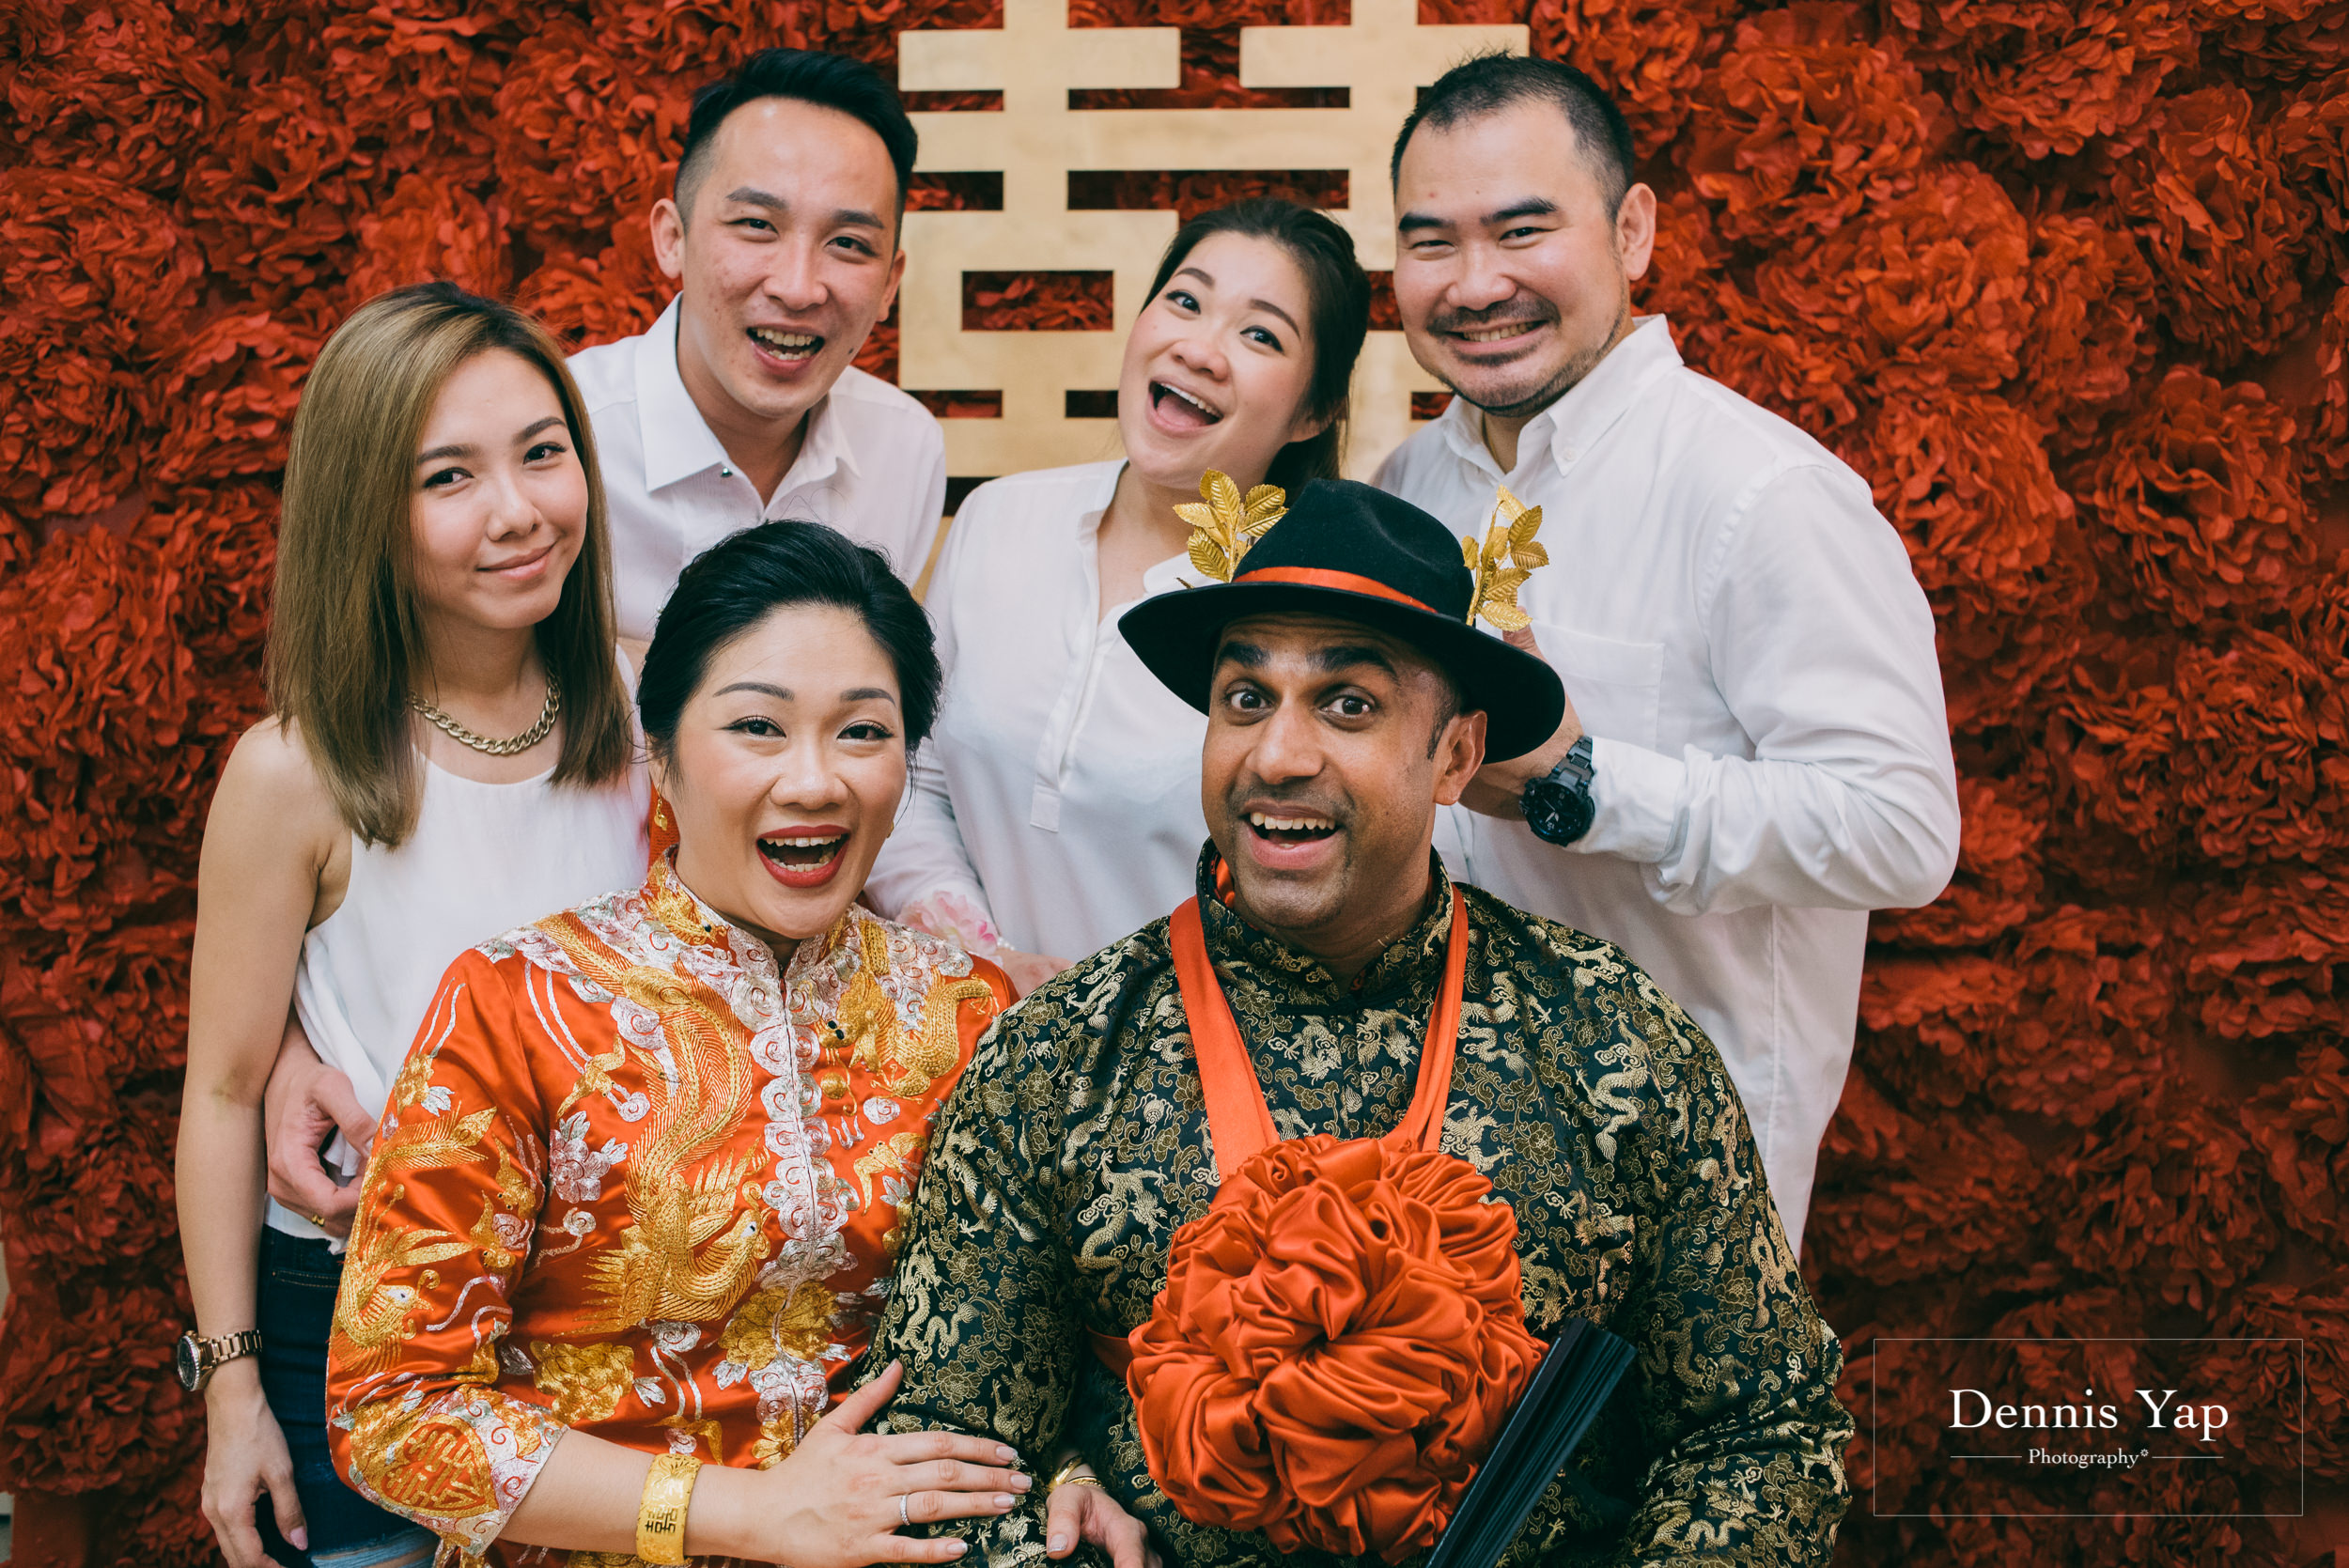 azmi zahraa wedding day gate crash traditional chinese and malay wedding dennis yap malaysia photographer-26.jpg